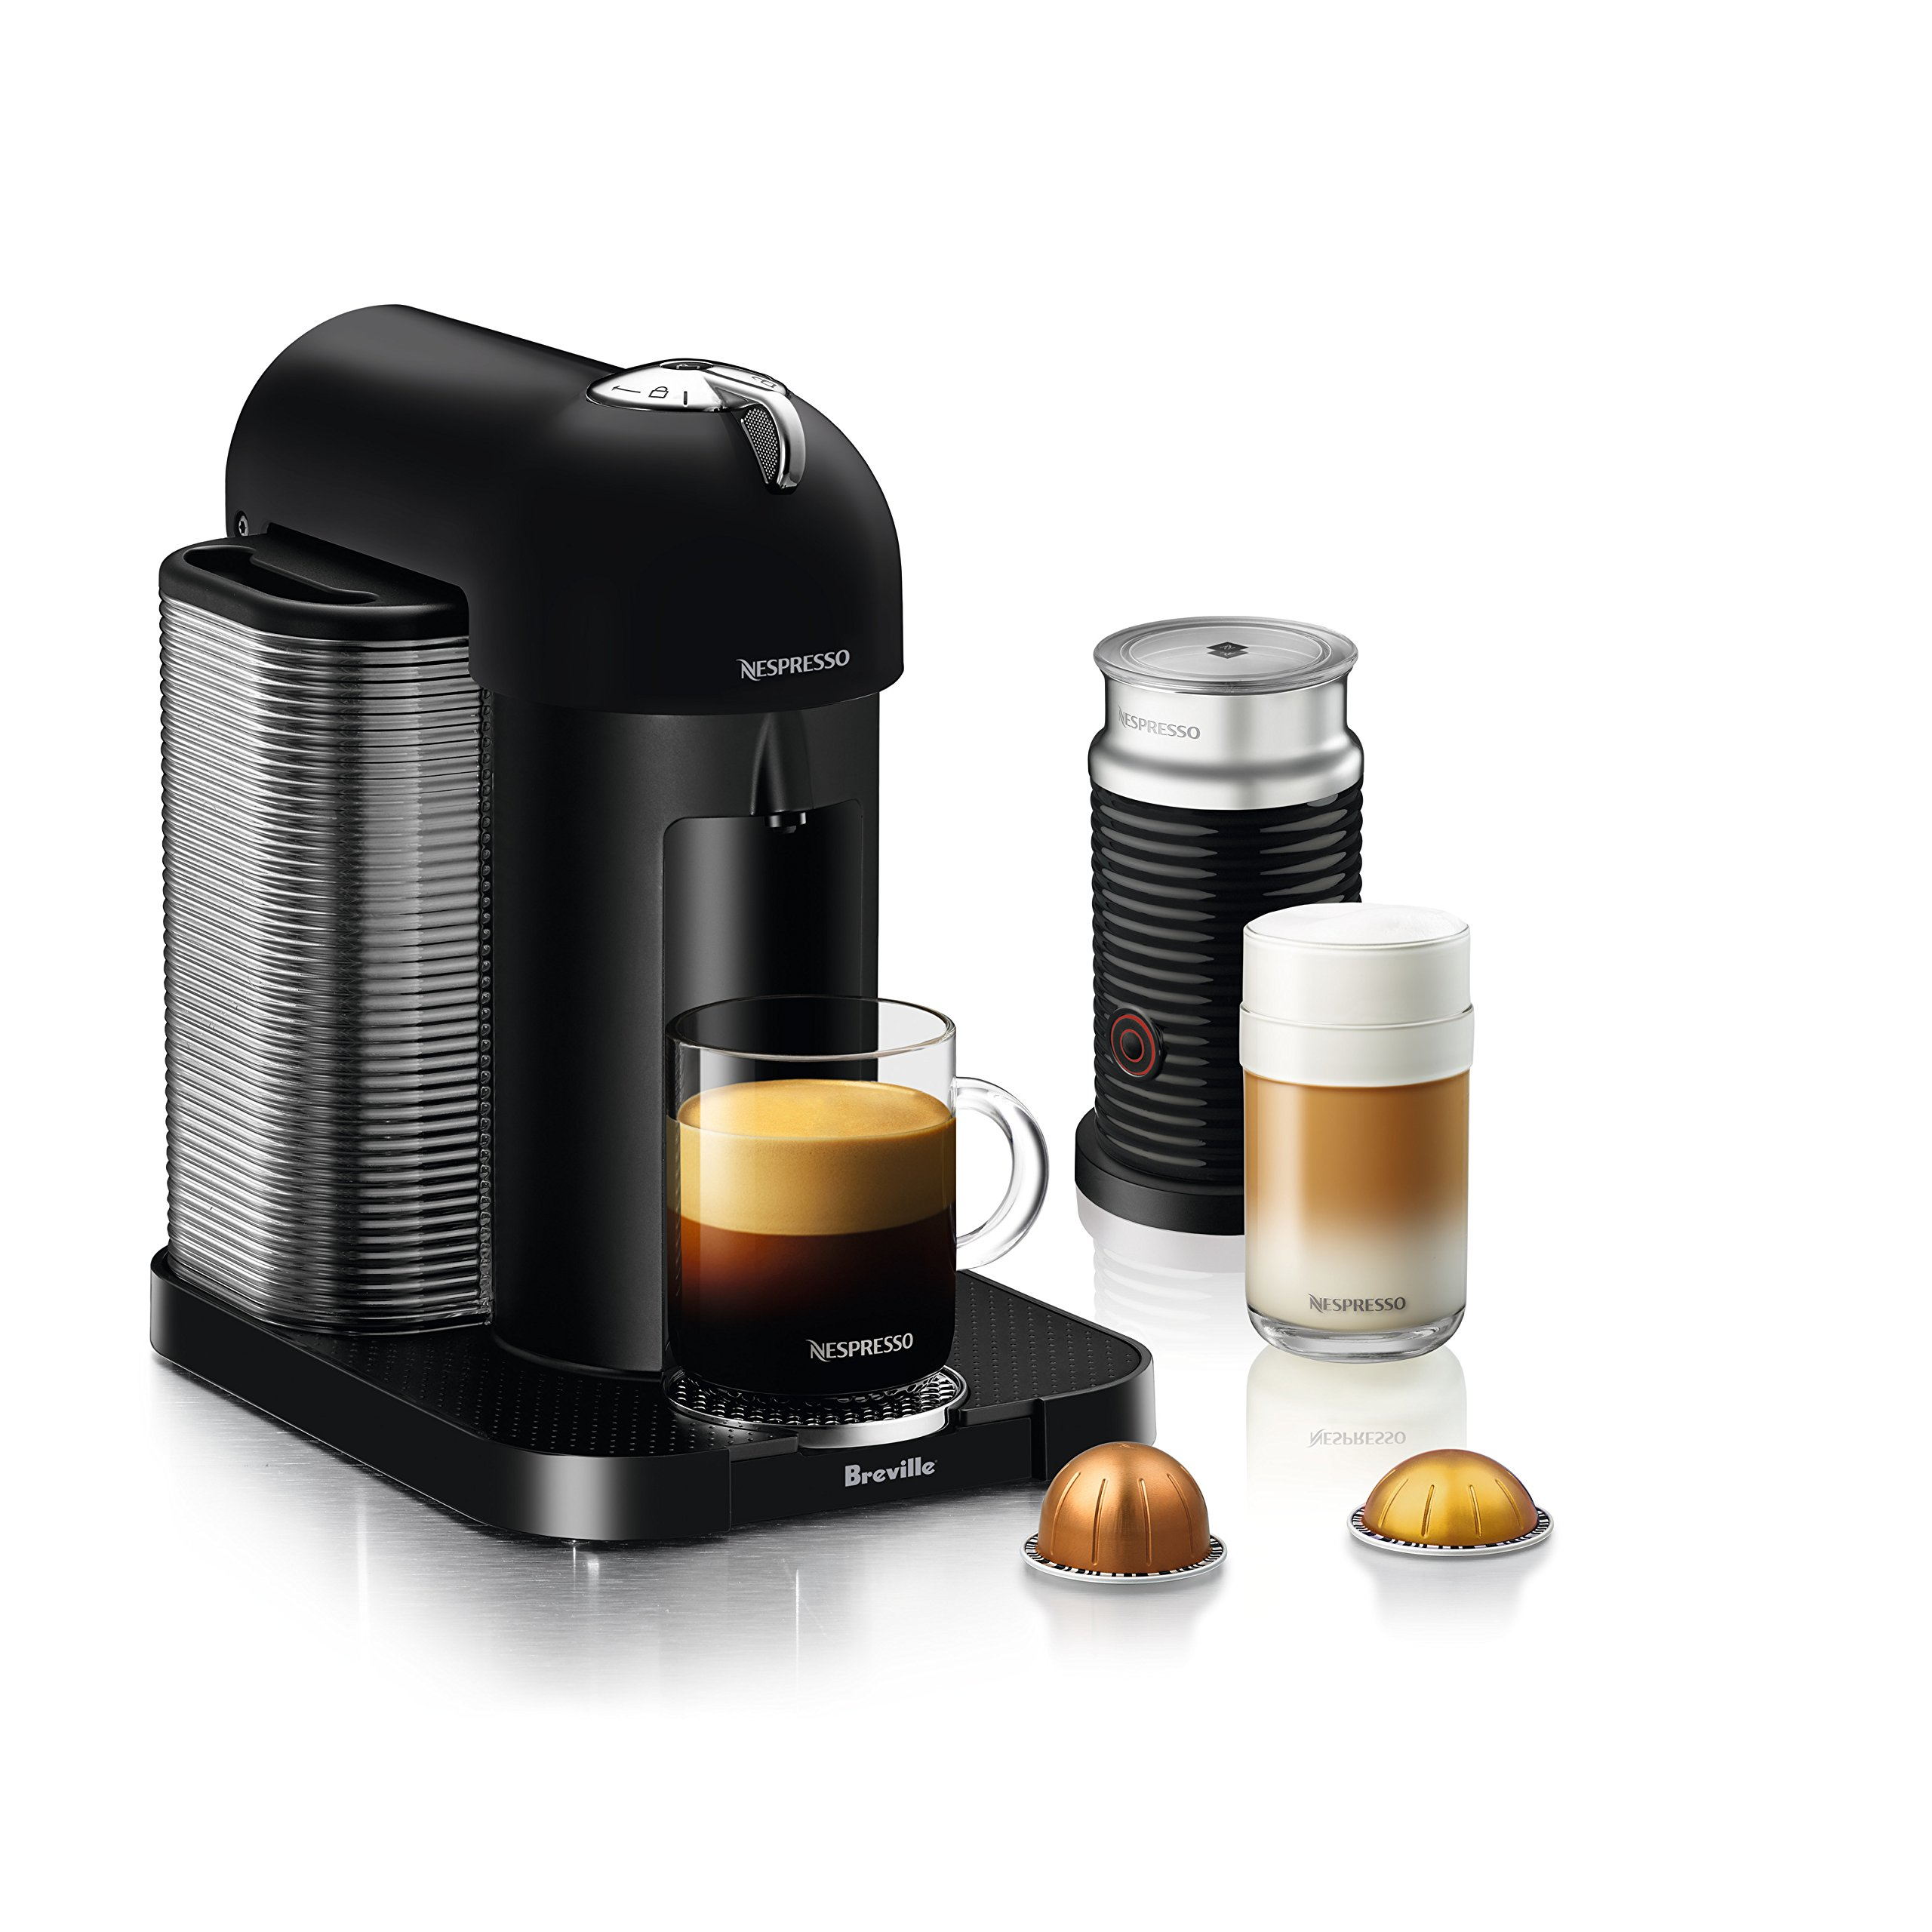 Nespresso Vertuo Coffee and Espresso Machine Bundle with Aeroccino Milk Frother by Breville, Matte Black by Breville